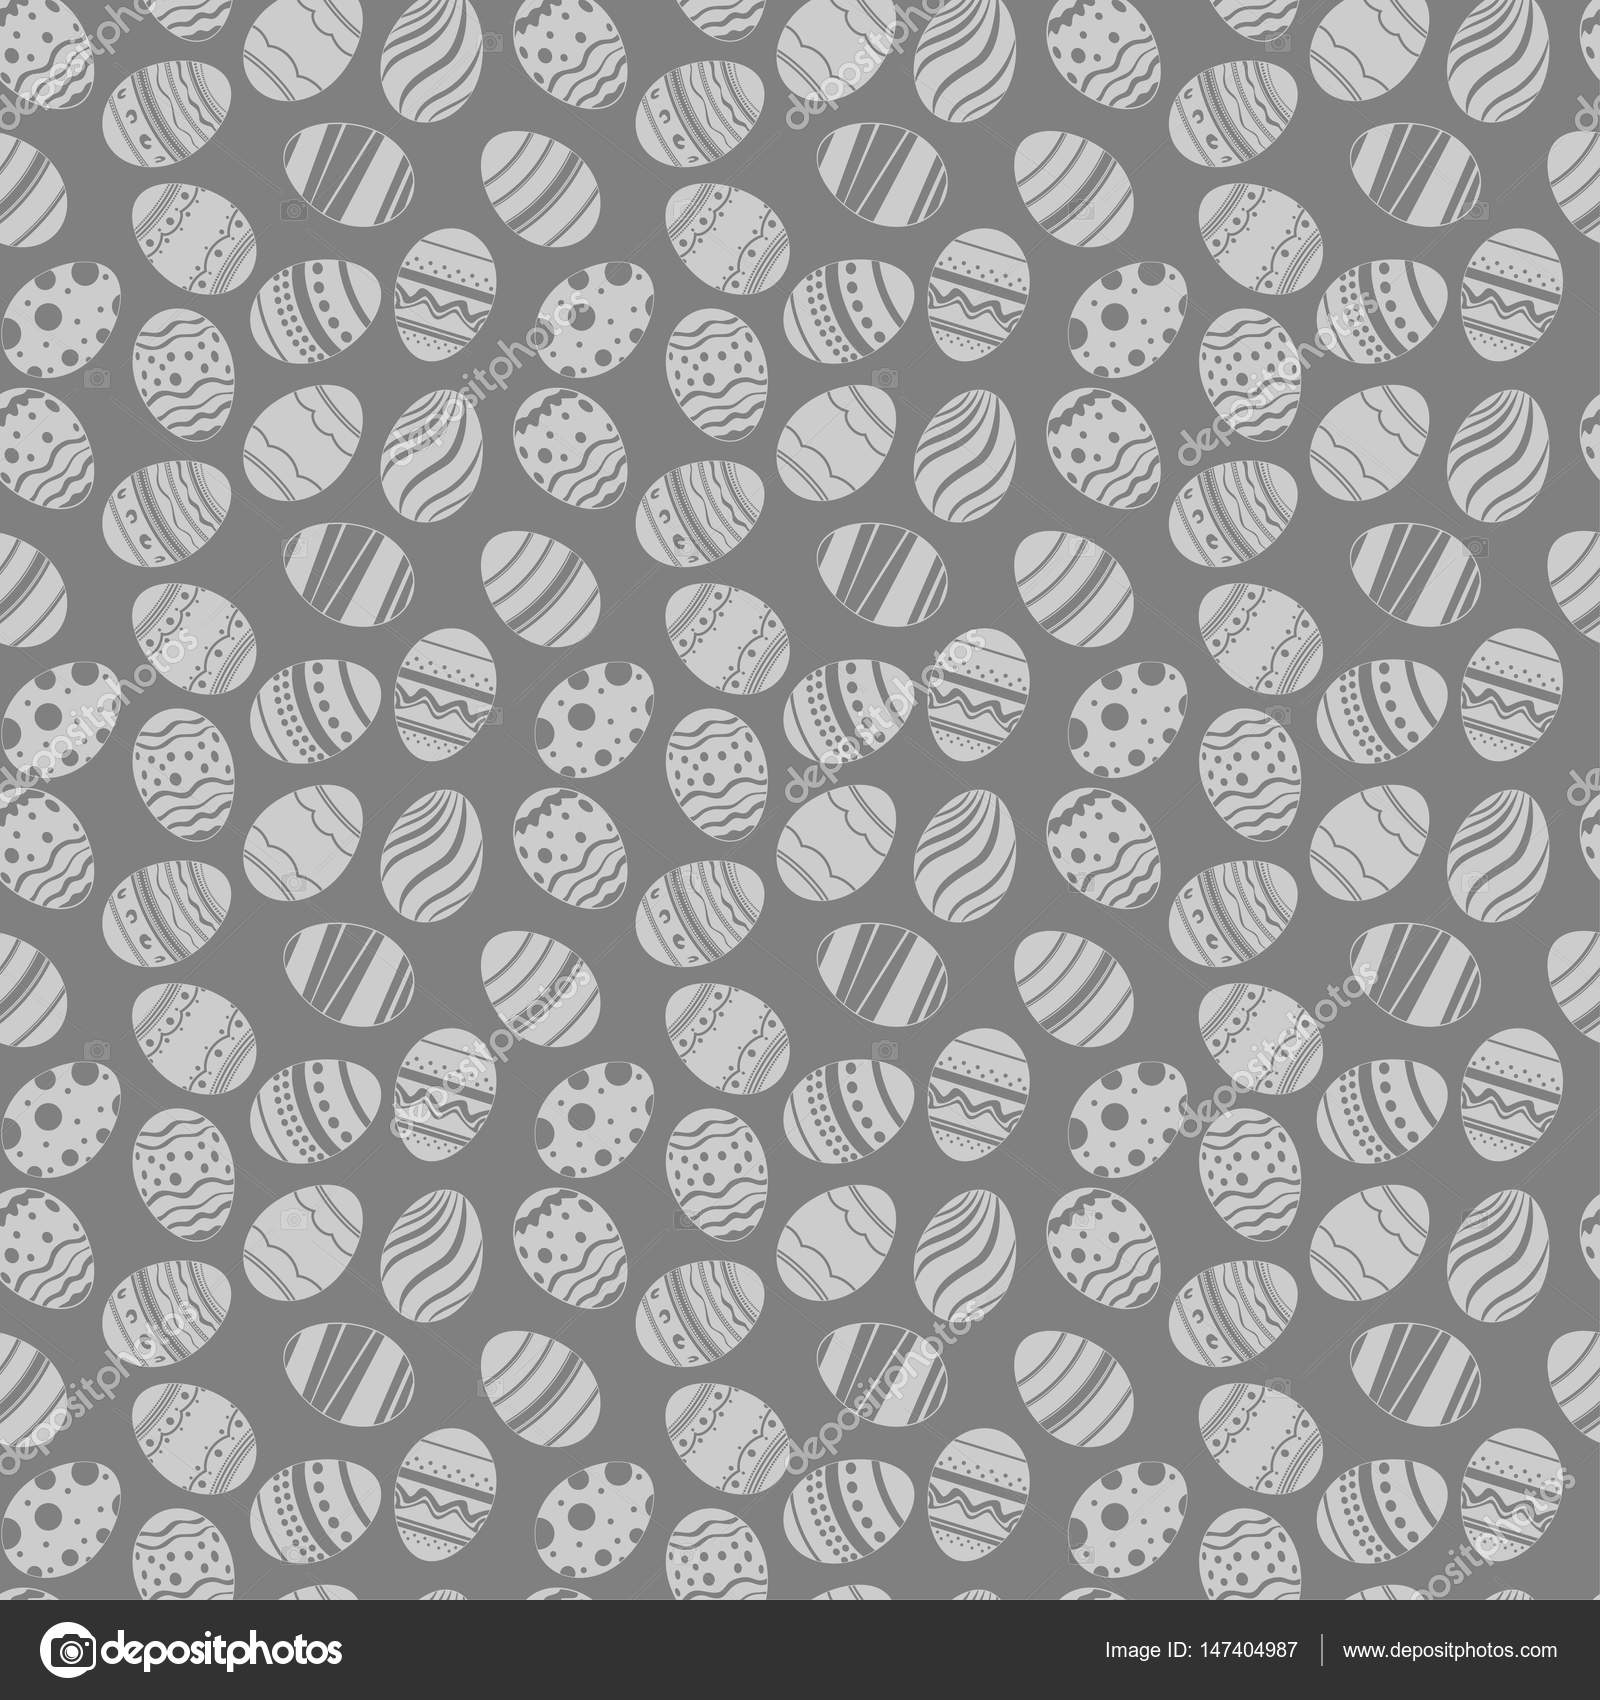 Easter eggs ornaments seamless pattern easter holiday grauy and easter eggs ornaments seamless pattern easter holiday grauy and white background for printing on fabric paper for scrapbooking gift wrap and wallpapers negle Images